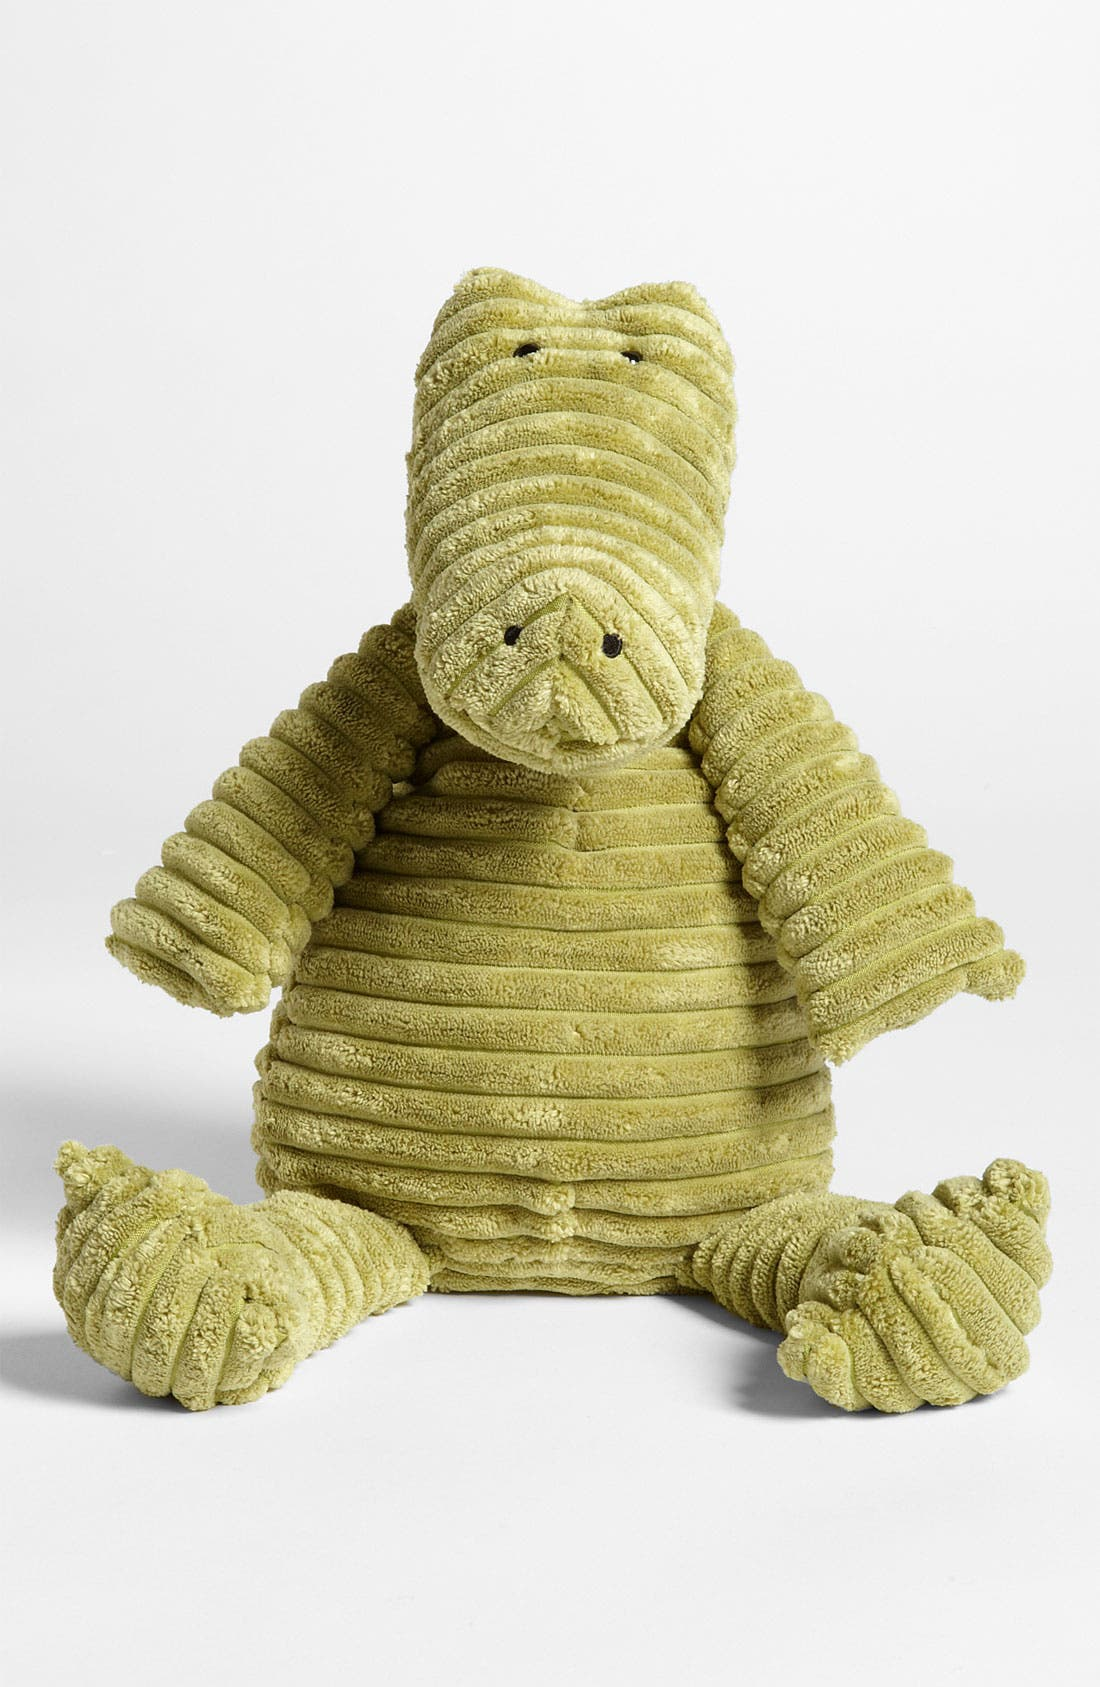 Alternate Image 1 Selected - Jellycat 'Cordy Roy Alligator' Stuffed Animal